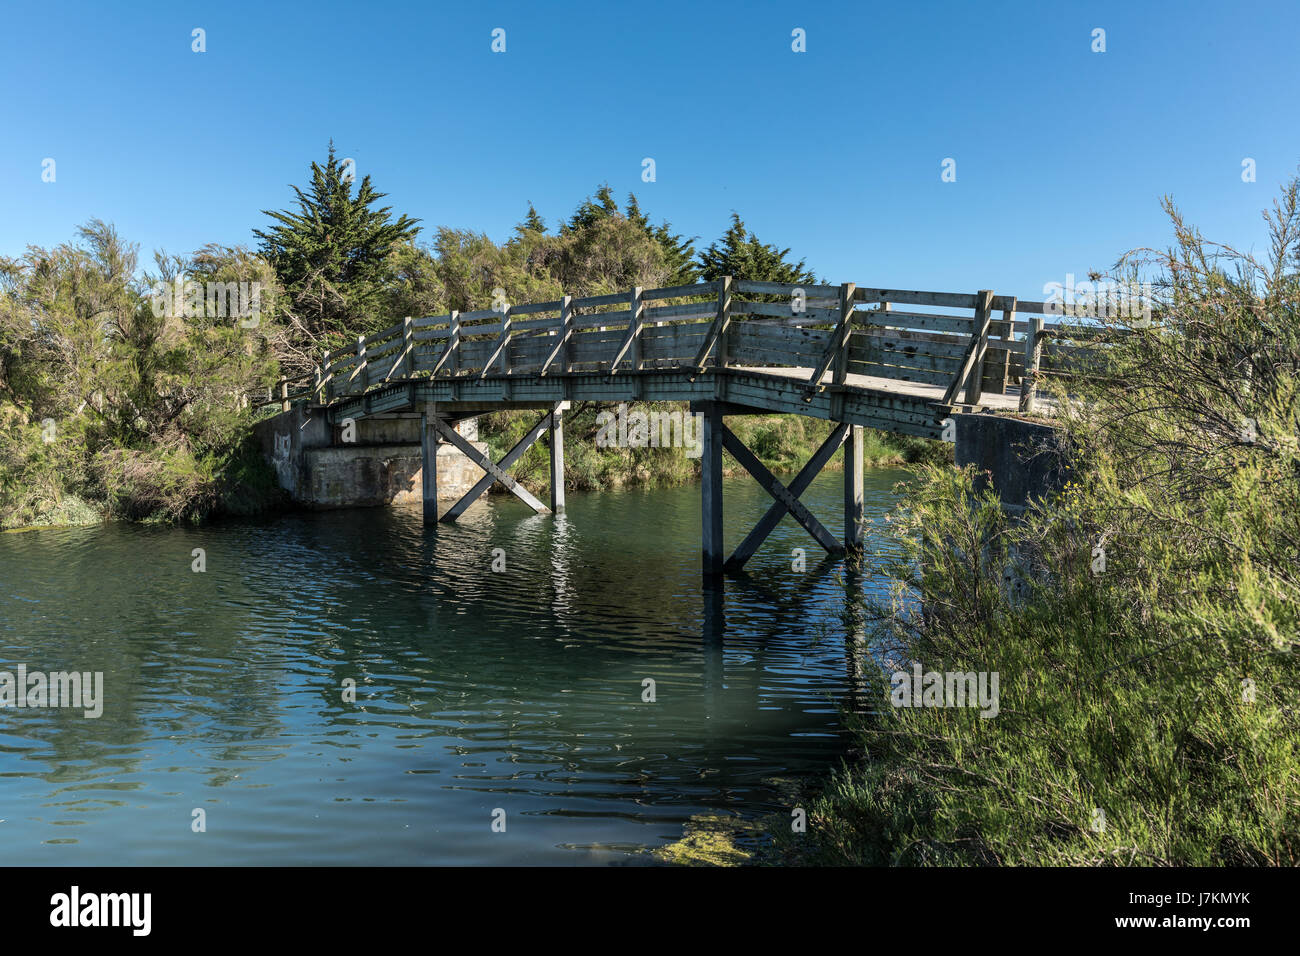 Wooden bridge in the Olonne swamp (Vendee, France) Stock Photo